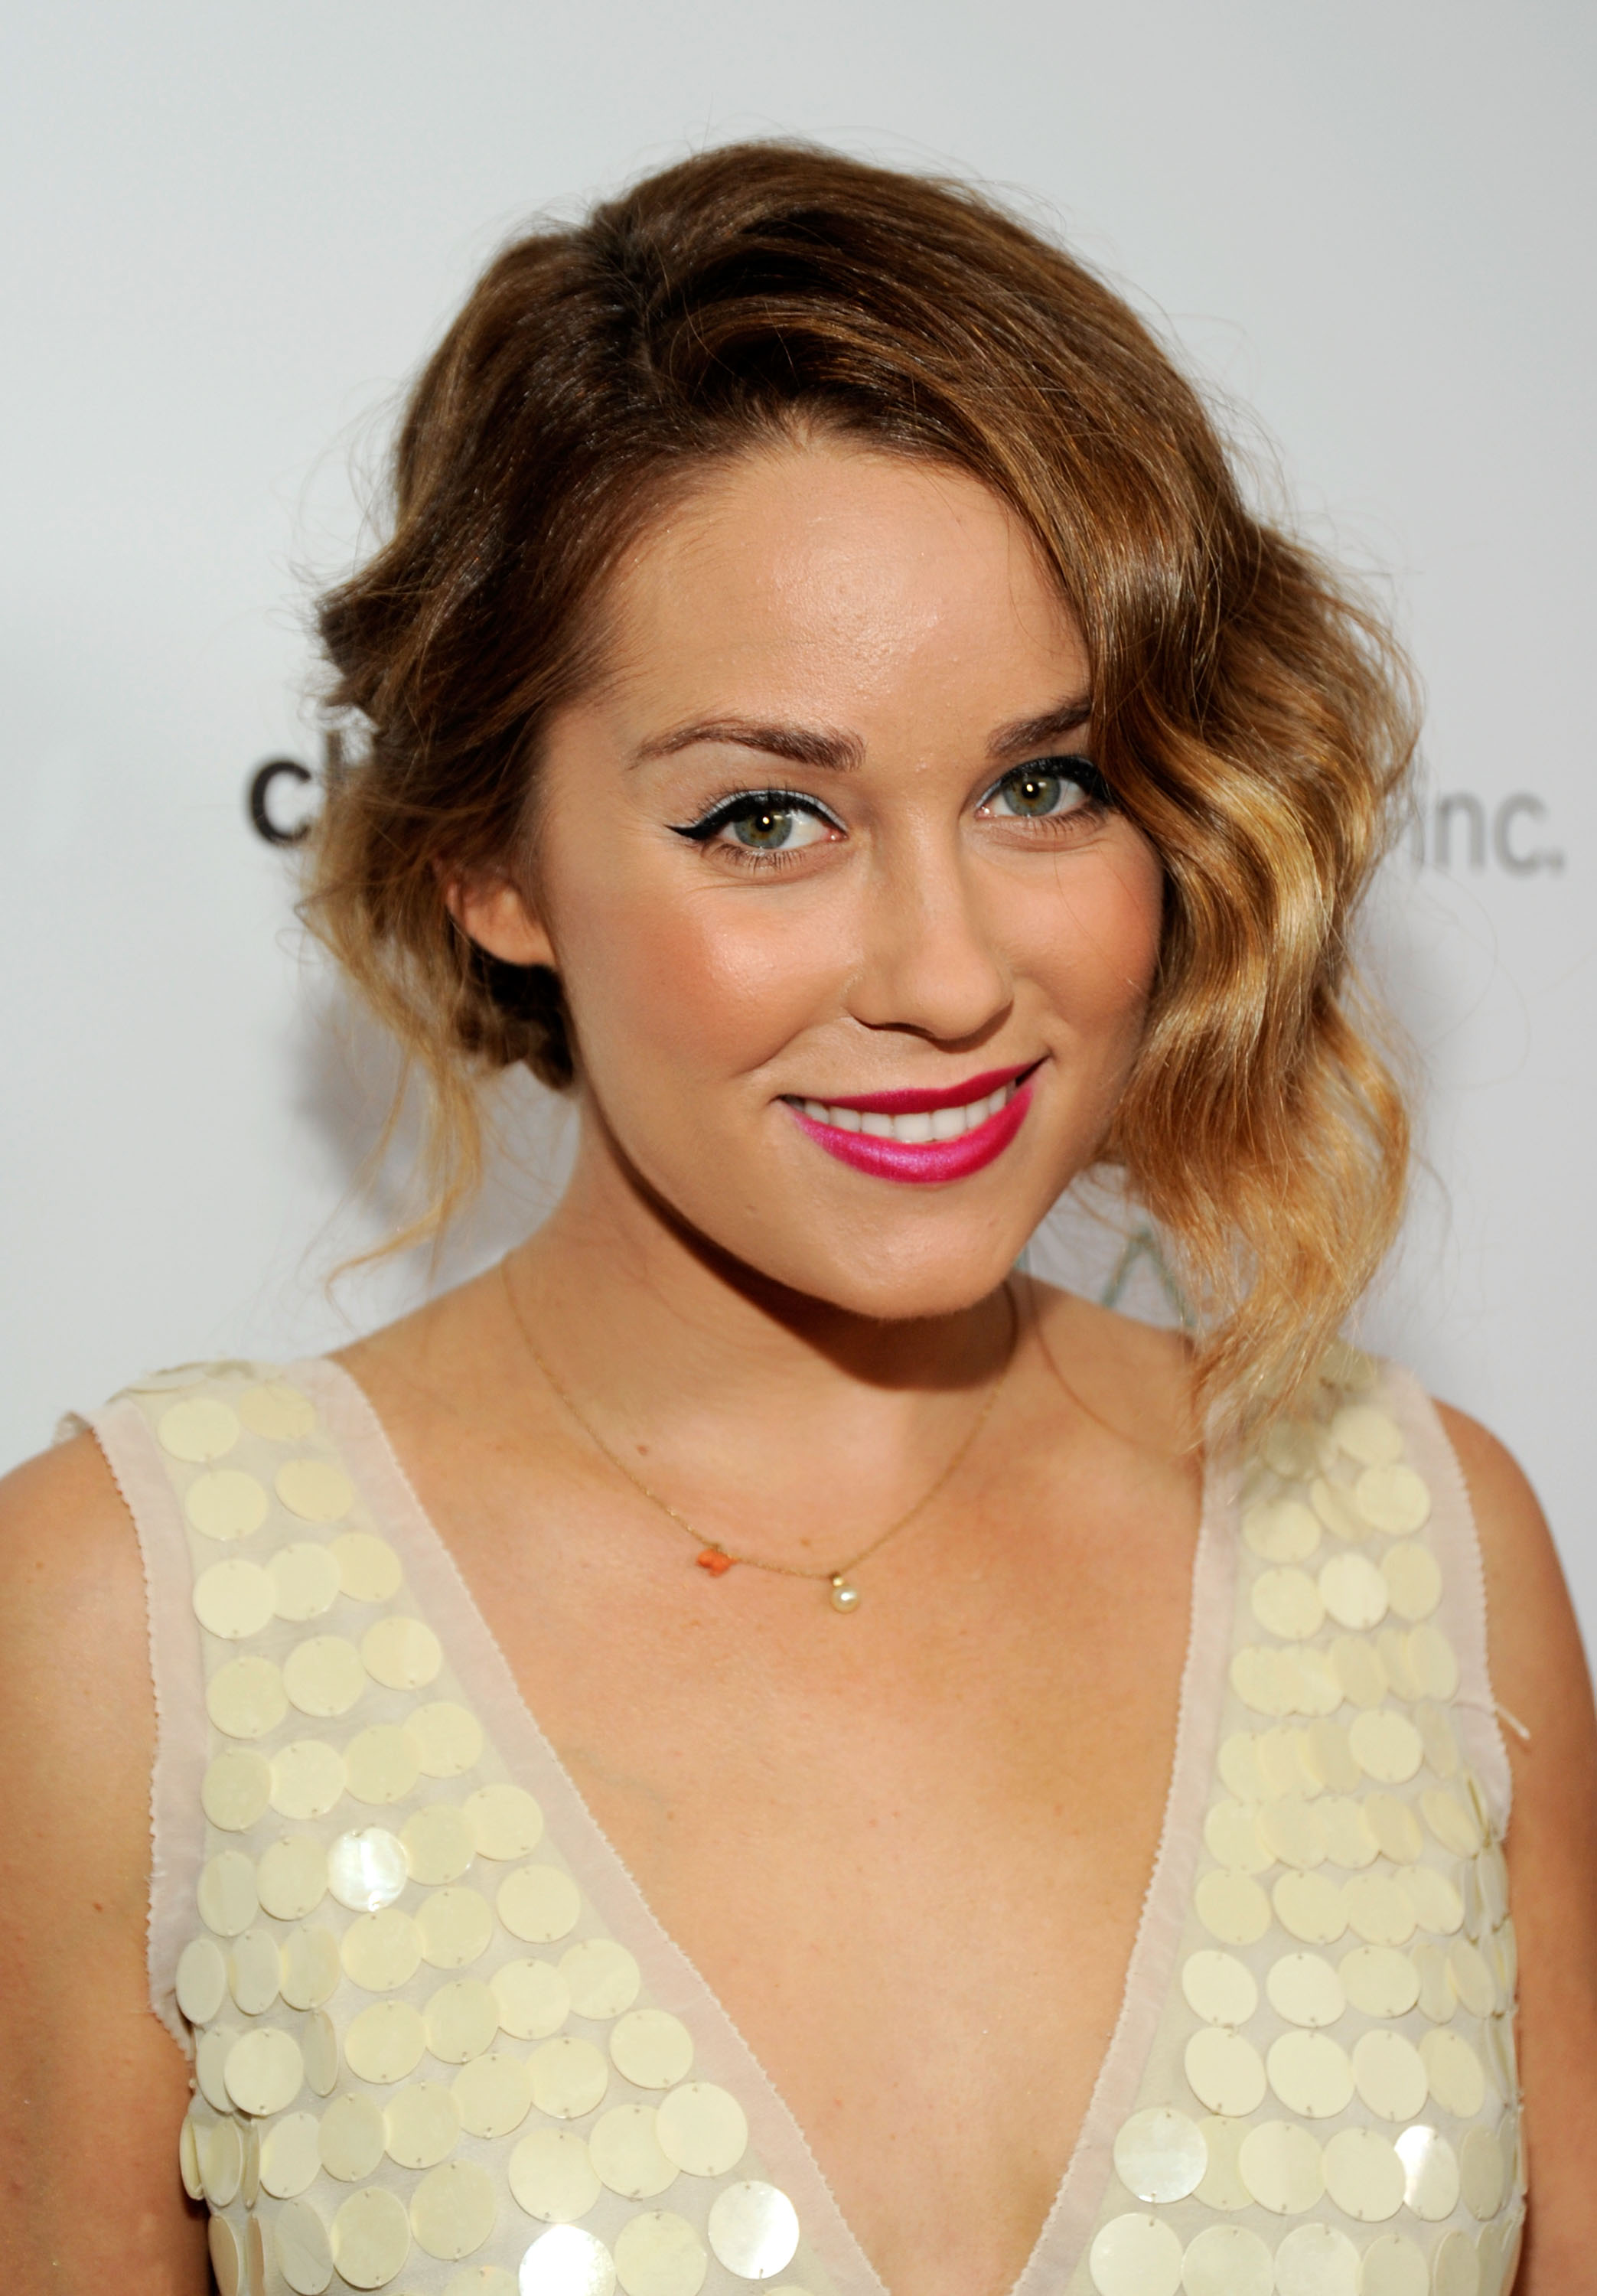 Lauren Conrad Has Great Advice For Dealing With Bullies She Would